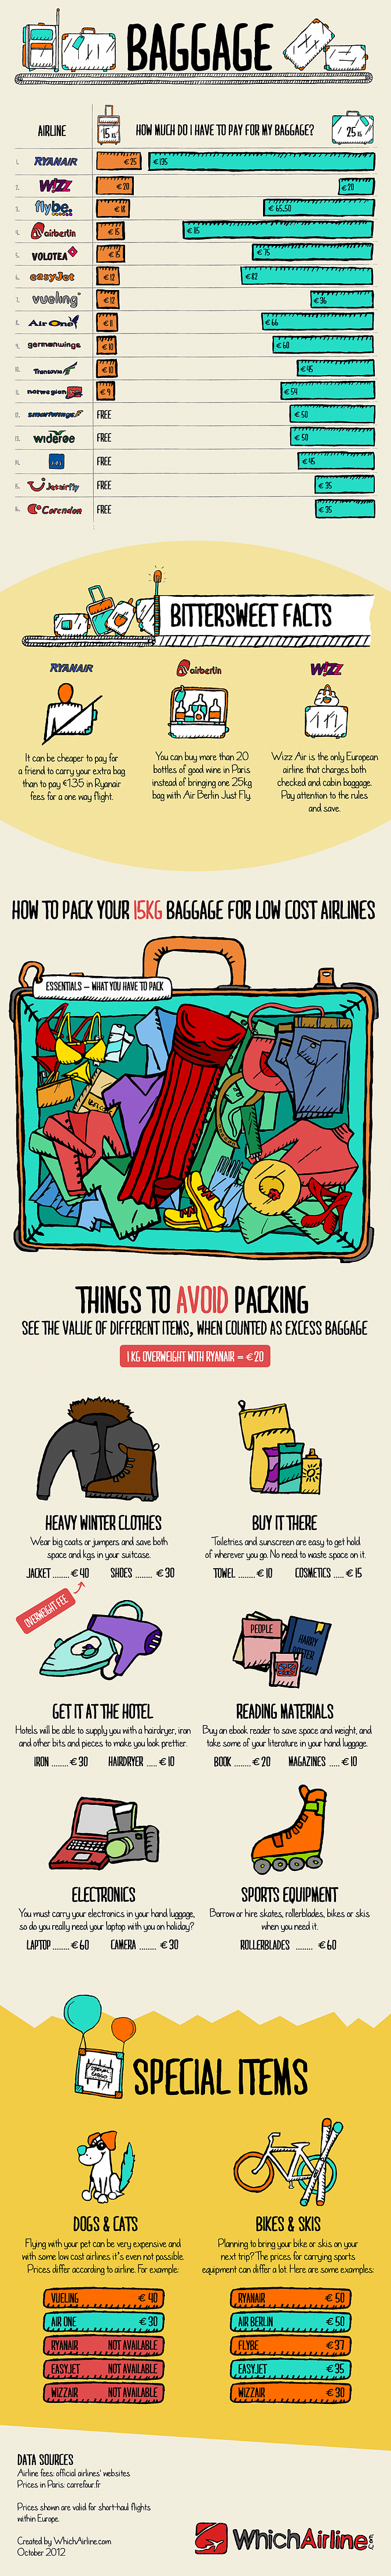 Low Cost Airline Baggage Fees Dissected (UK Version)